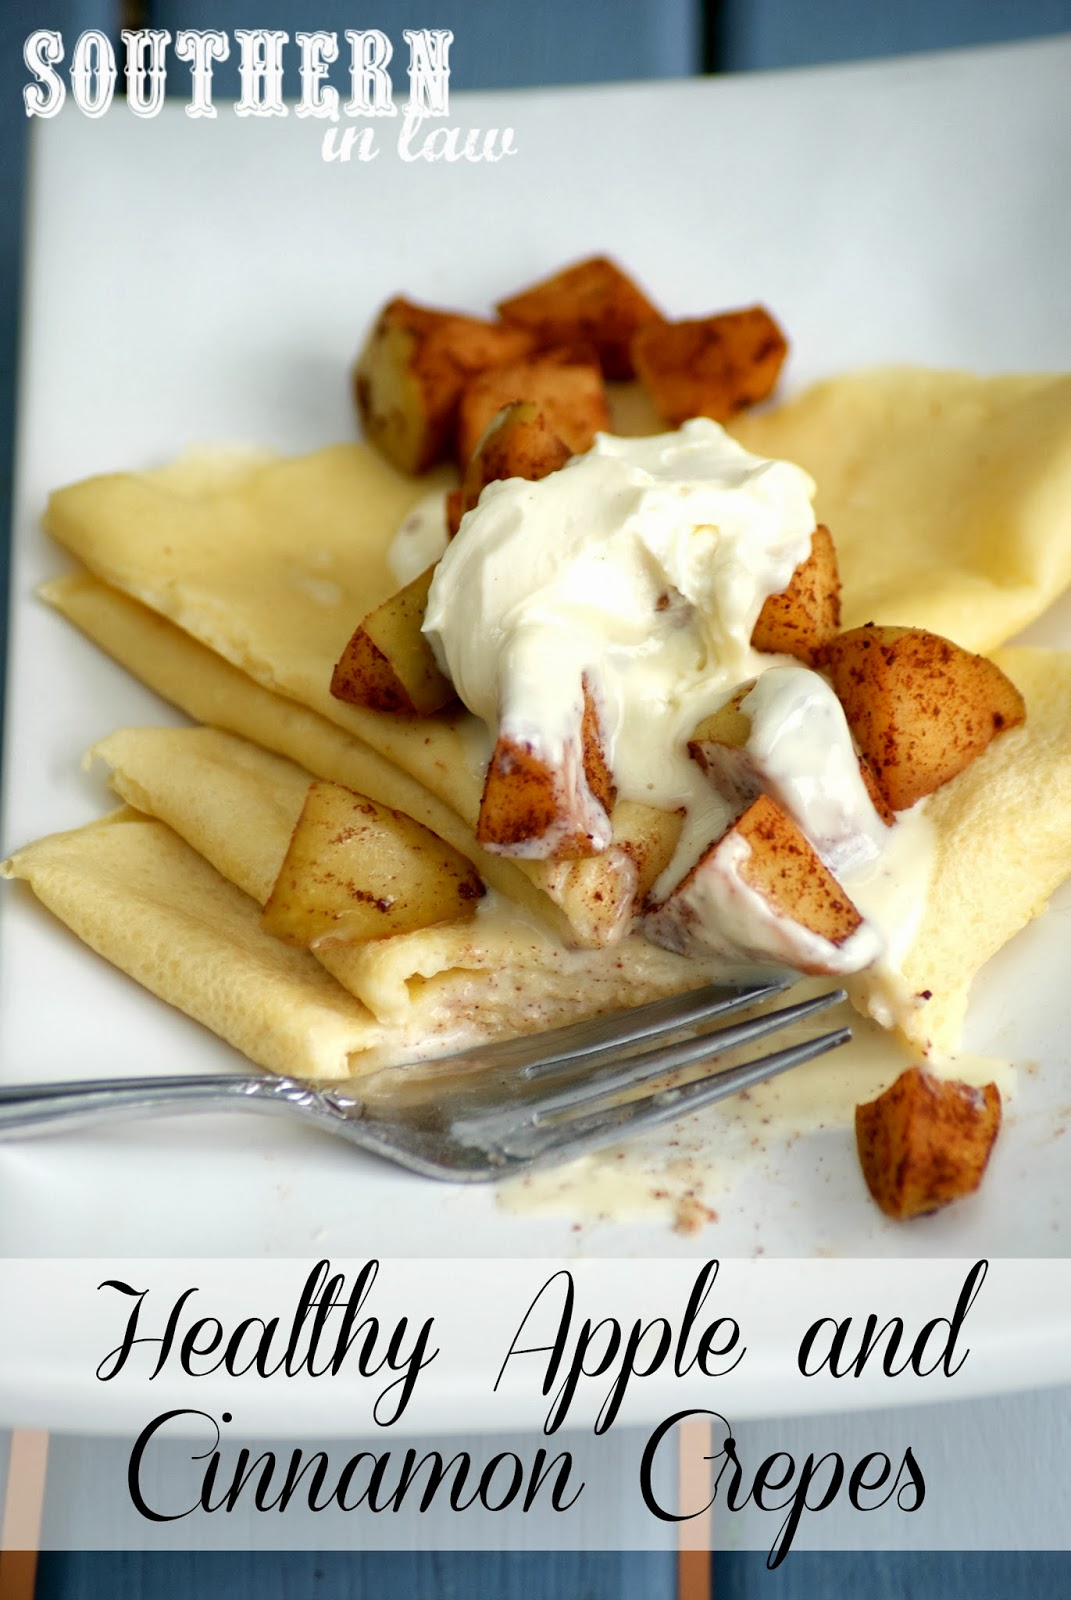 Healthy Apple and Cinnamon Crepes Recipe